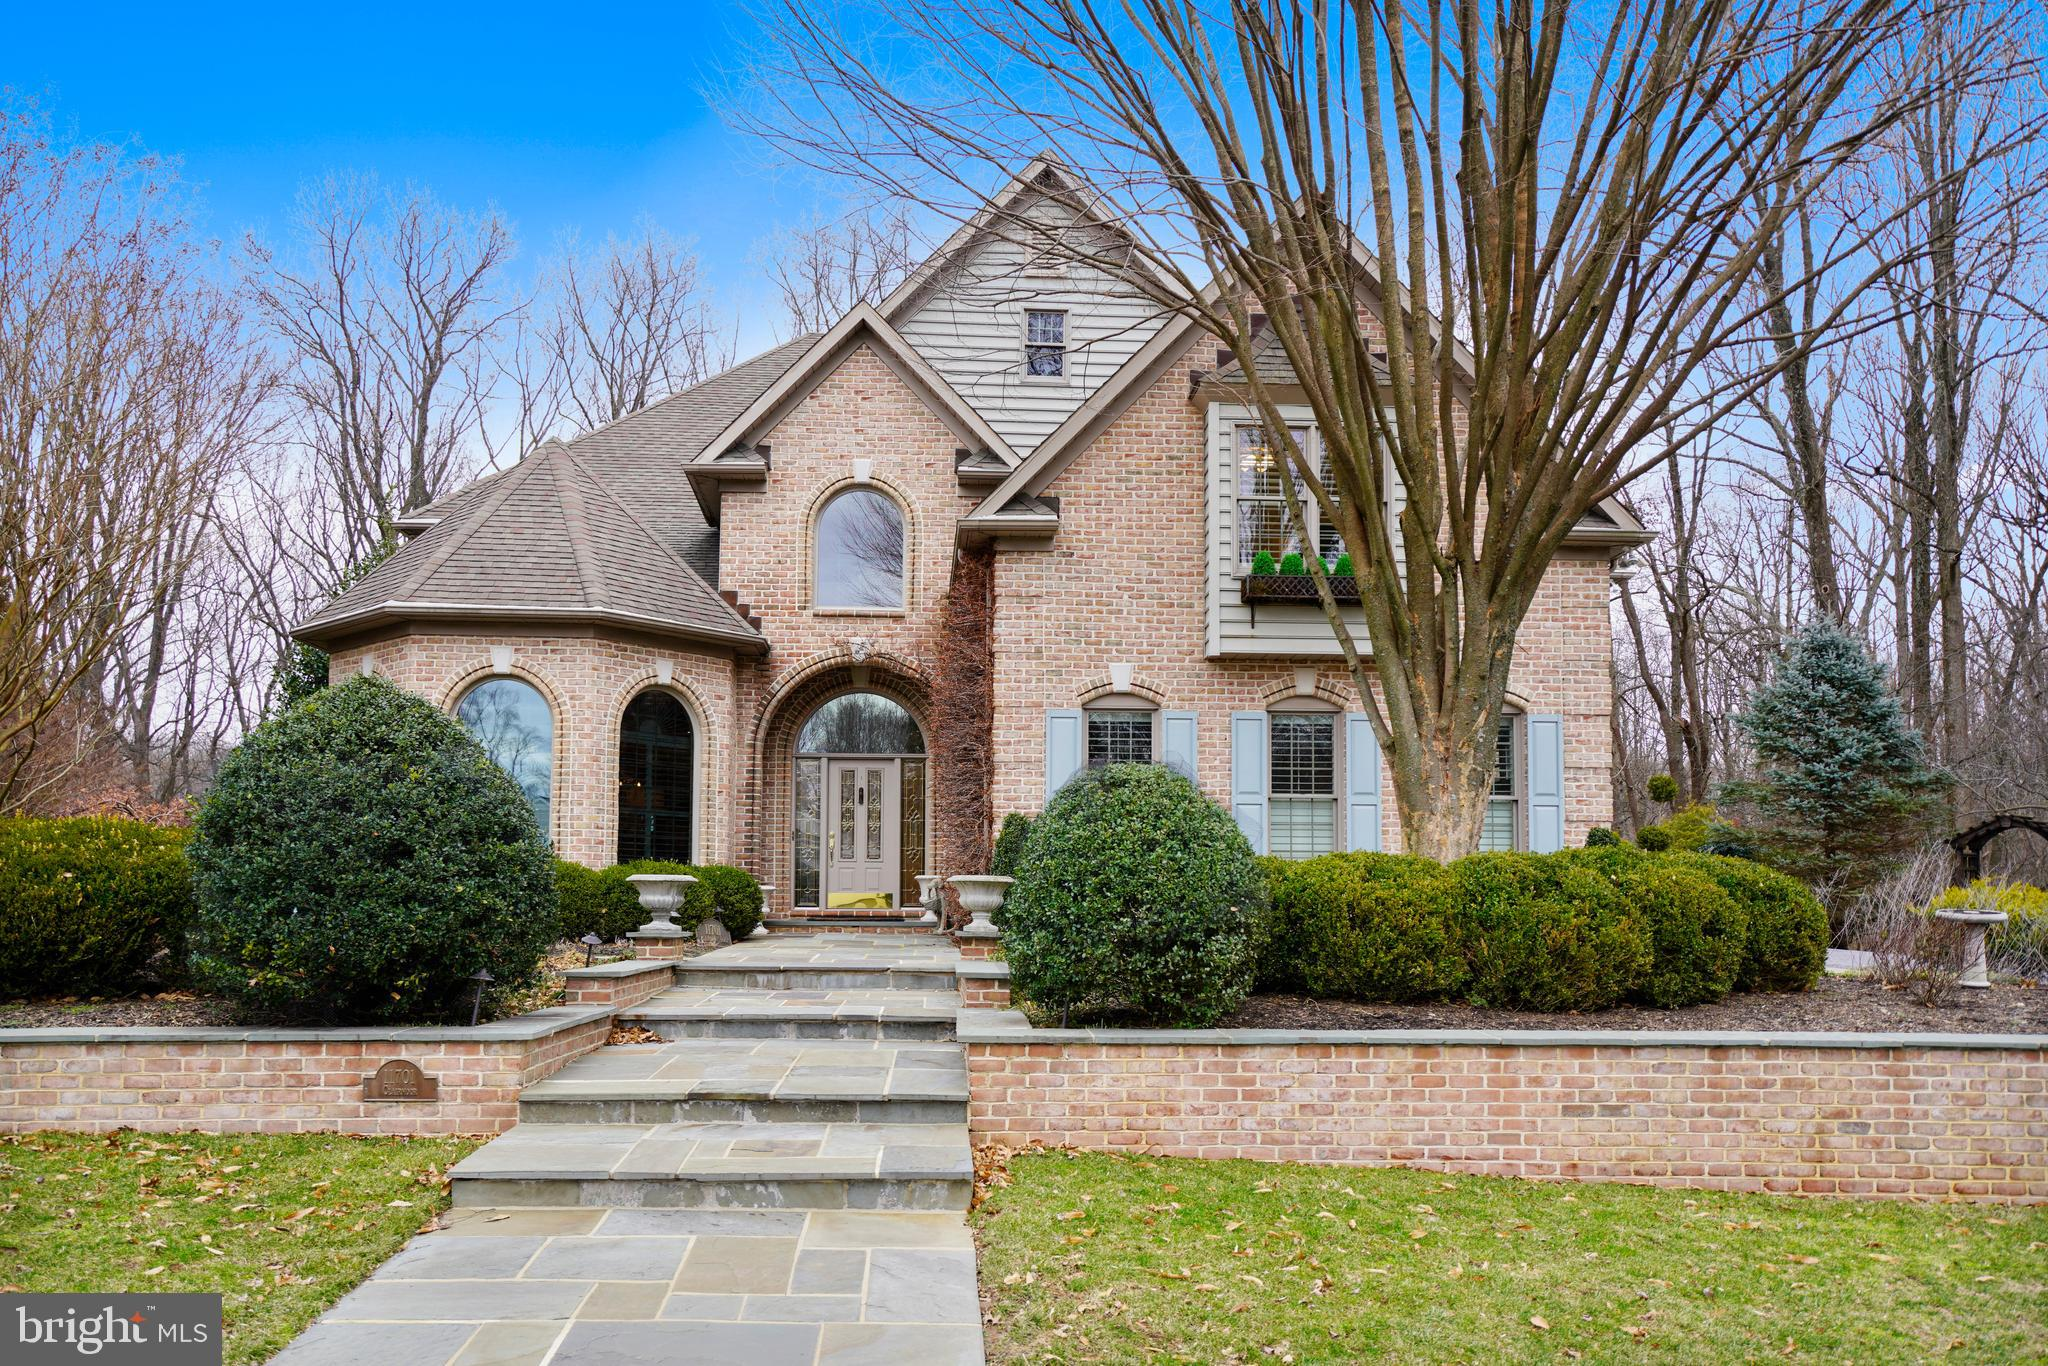 11701 CLAIRMOOR ROAD, LUTHERVILLE TIMONIUM, MD 21093